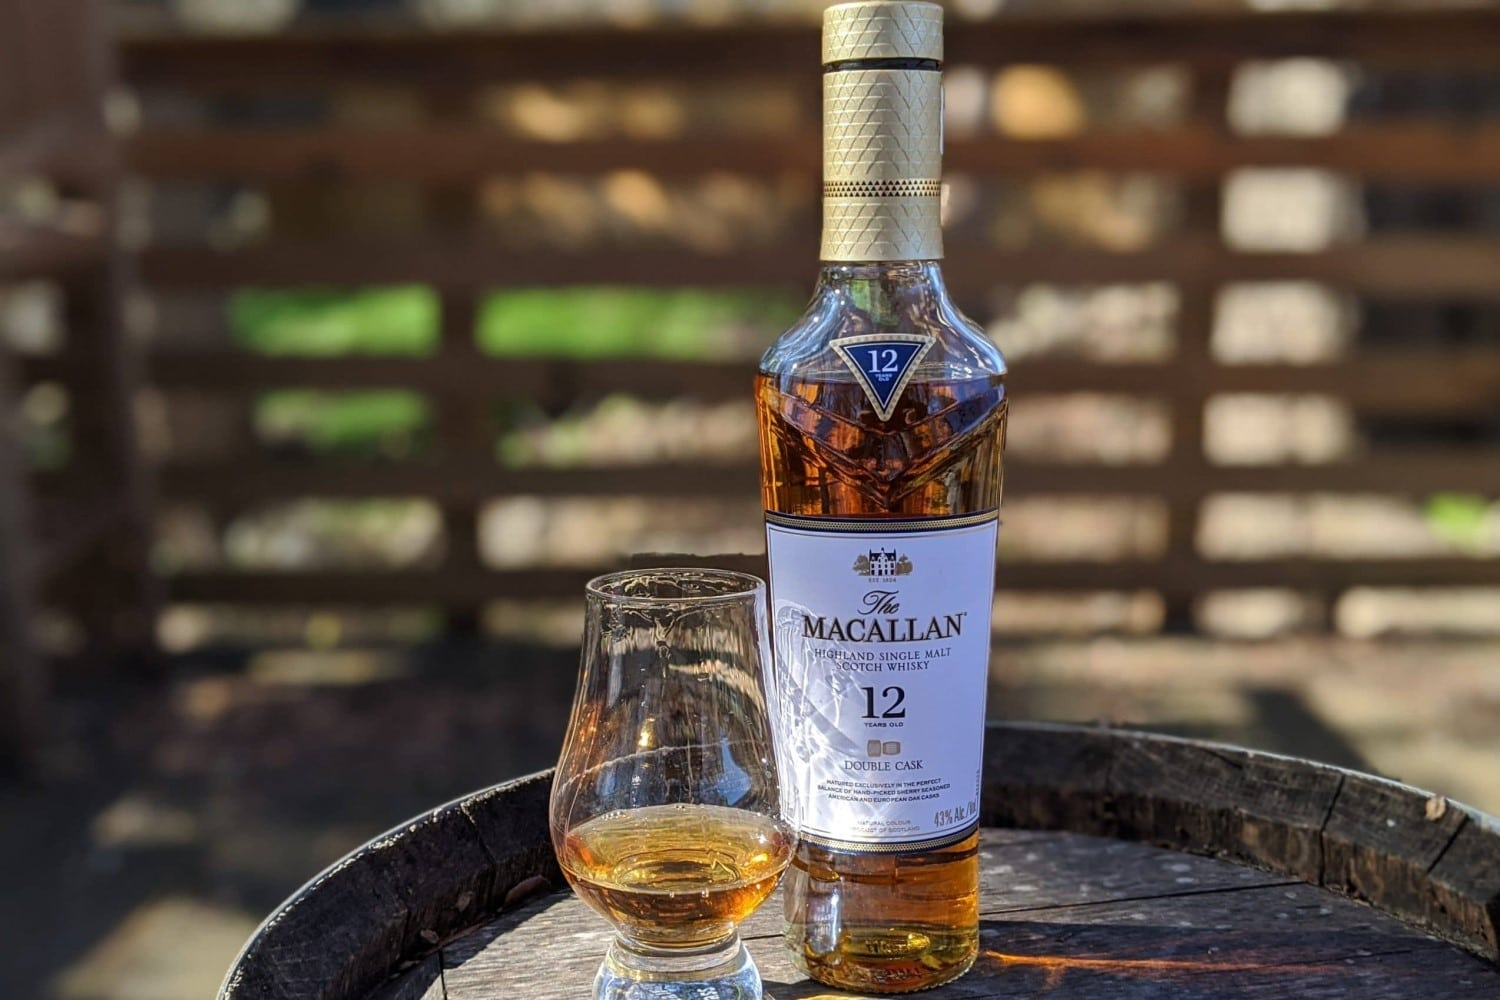 Macallan is a great brand, even for beginners